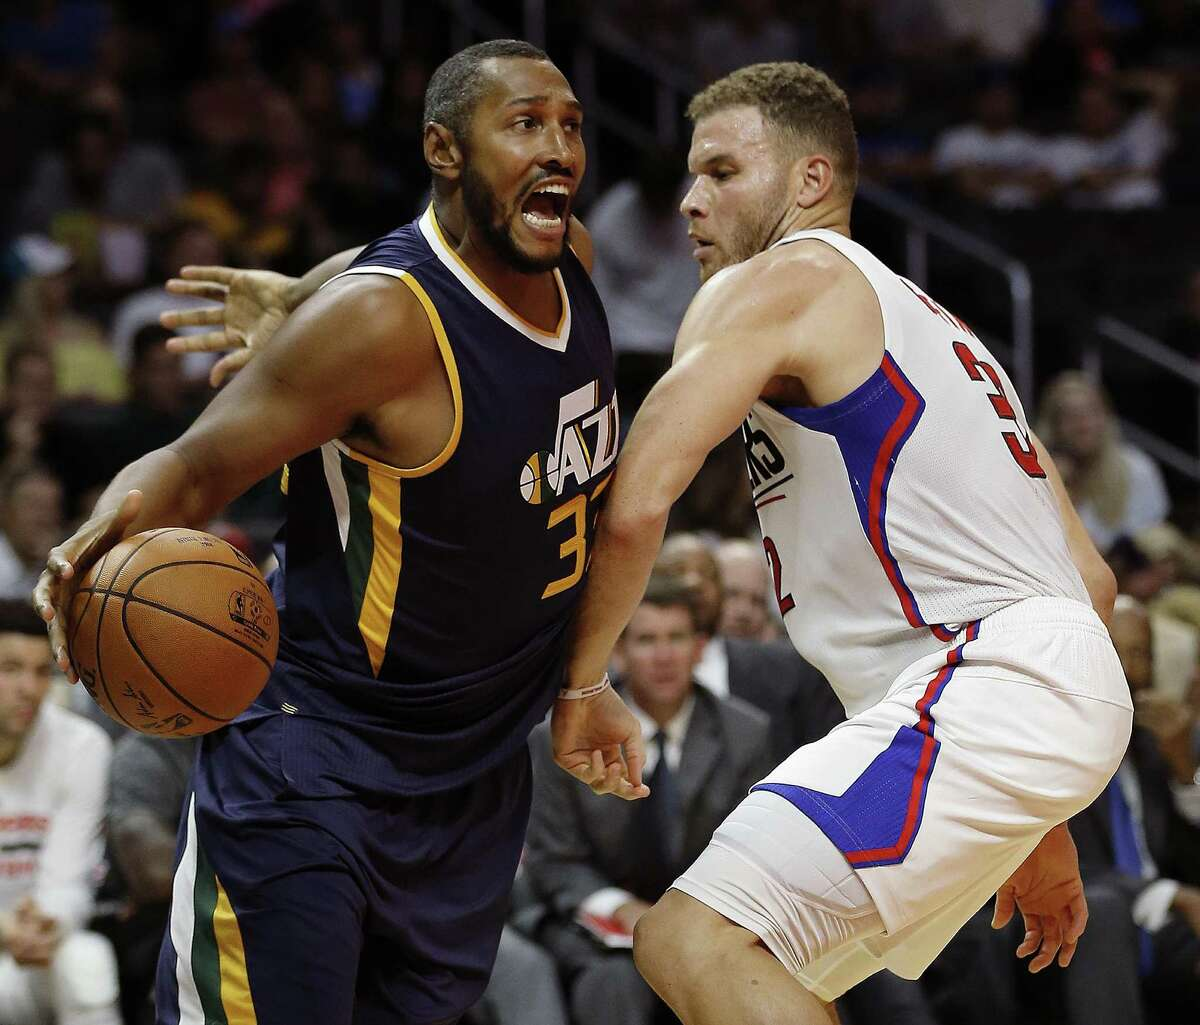 Utah Jazz center Boris Diaw (left) gets fouled driving to the basket against Los Angeles Clippers forward Blake Griffin during a preseason game on Oct. 10, 2016.